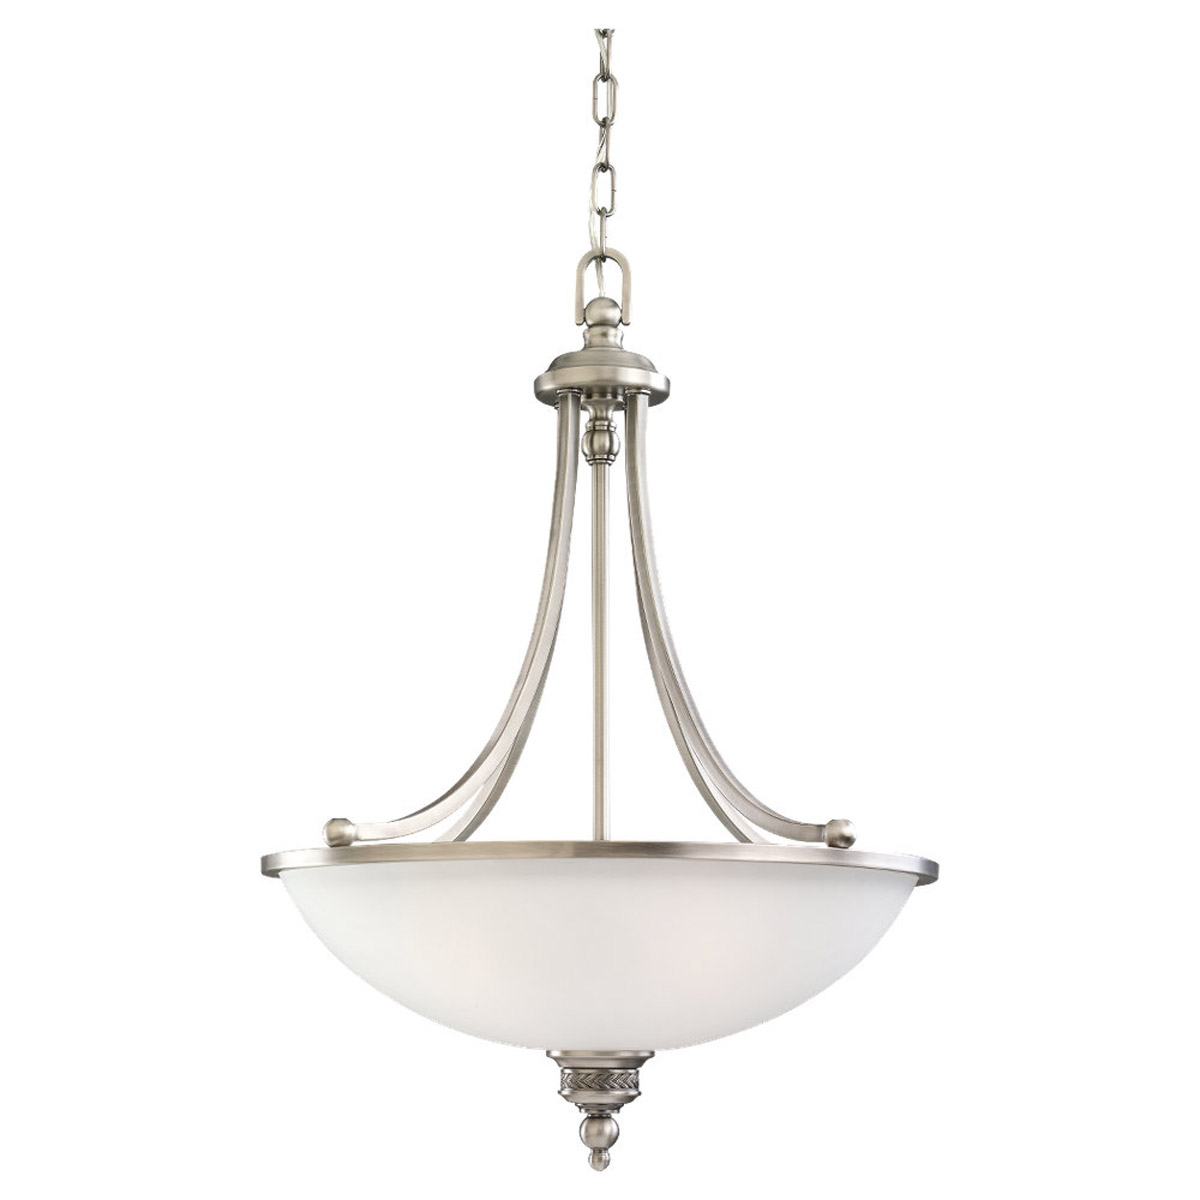 Sea Gull Lighting Laurel Leaf 3 Light Pendant in Antique Brushed Nickel 65351-965